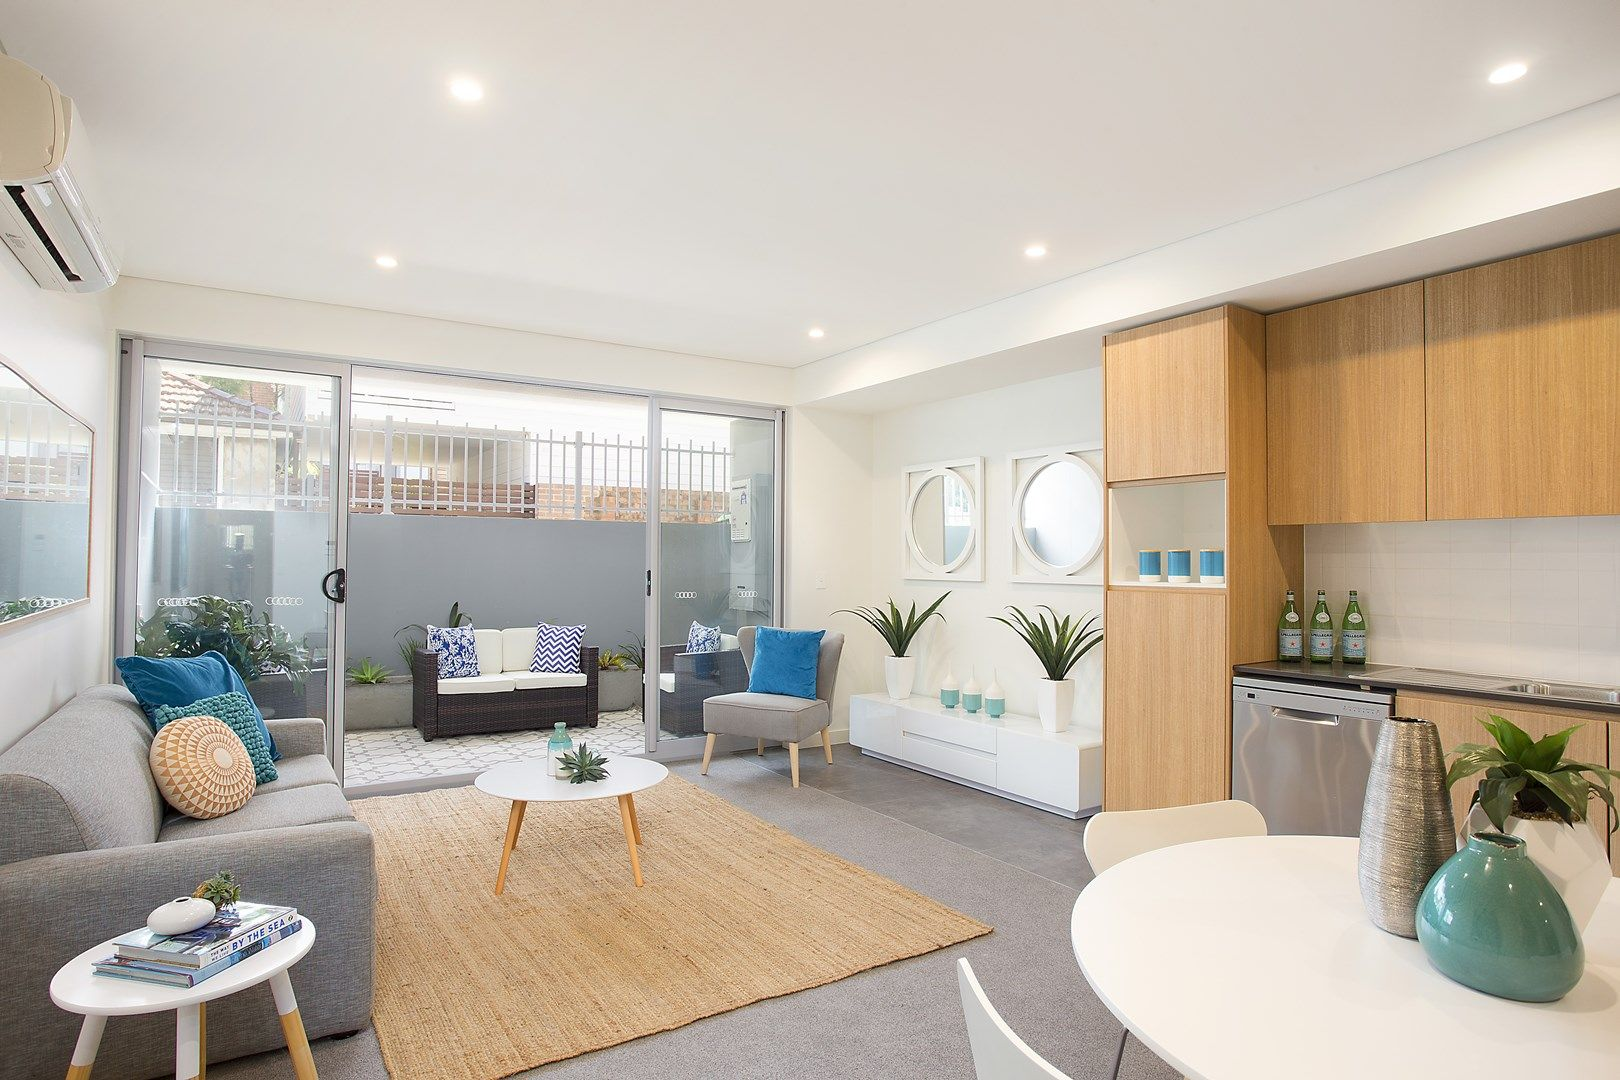 7/301-303 Condamine Street, Manly Vale NSW 2093, Image 0